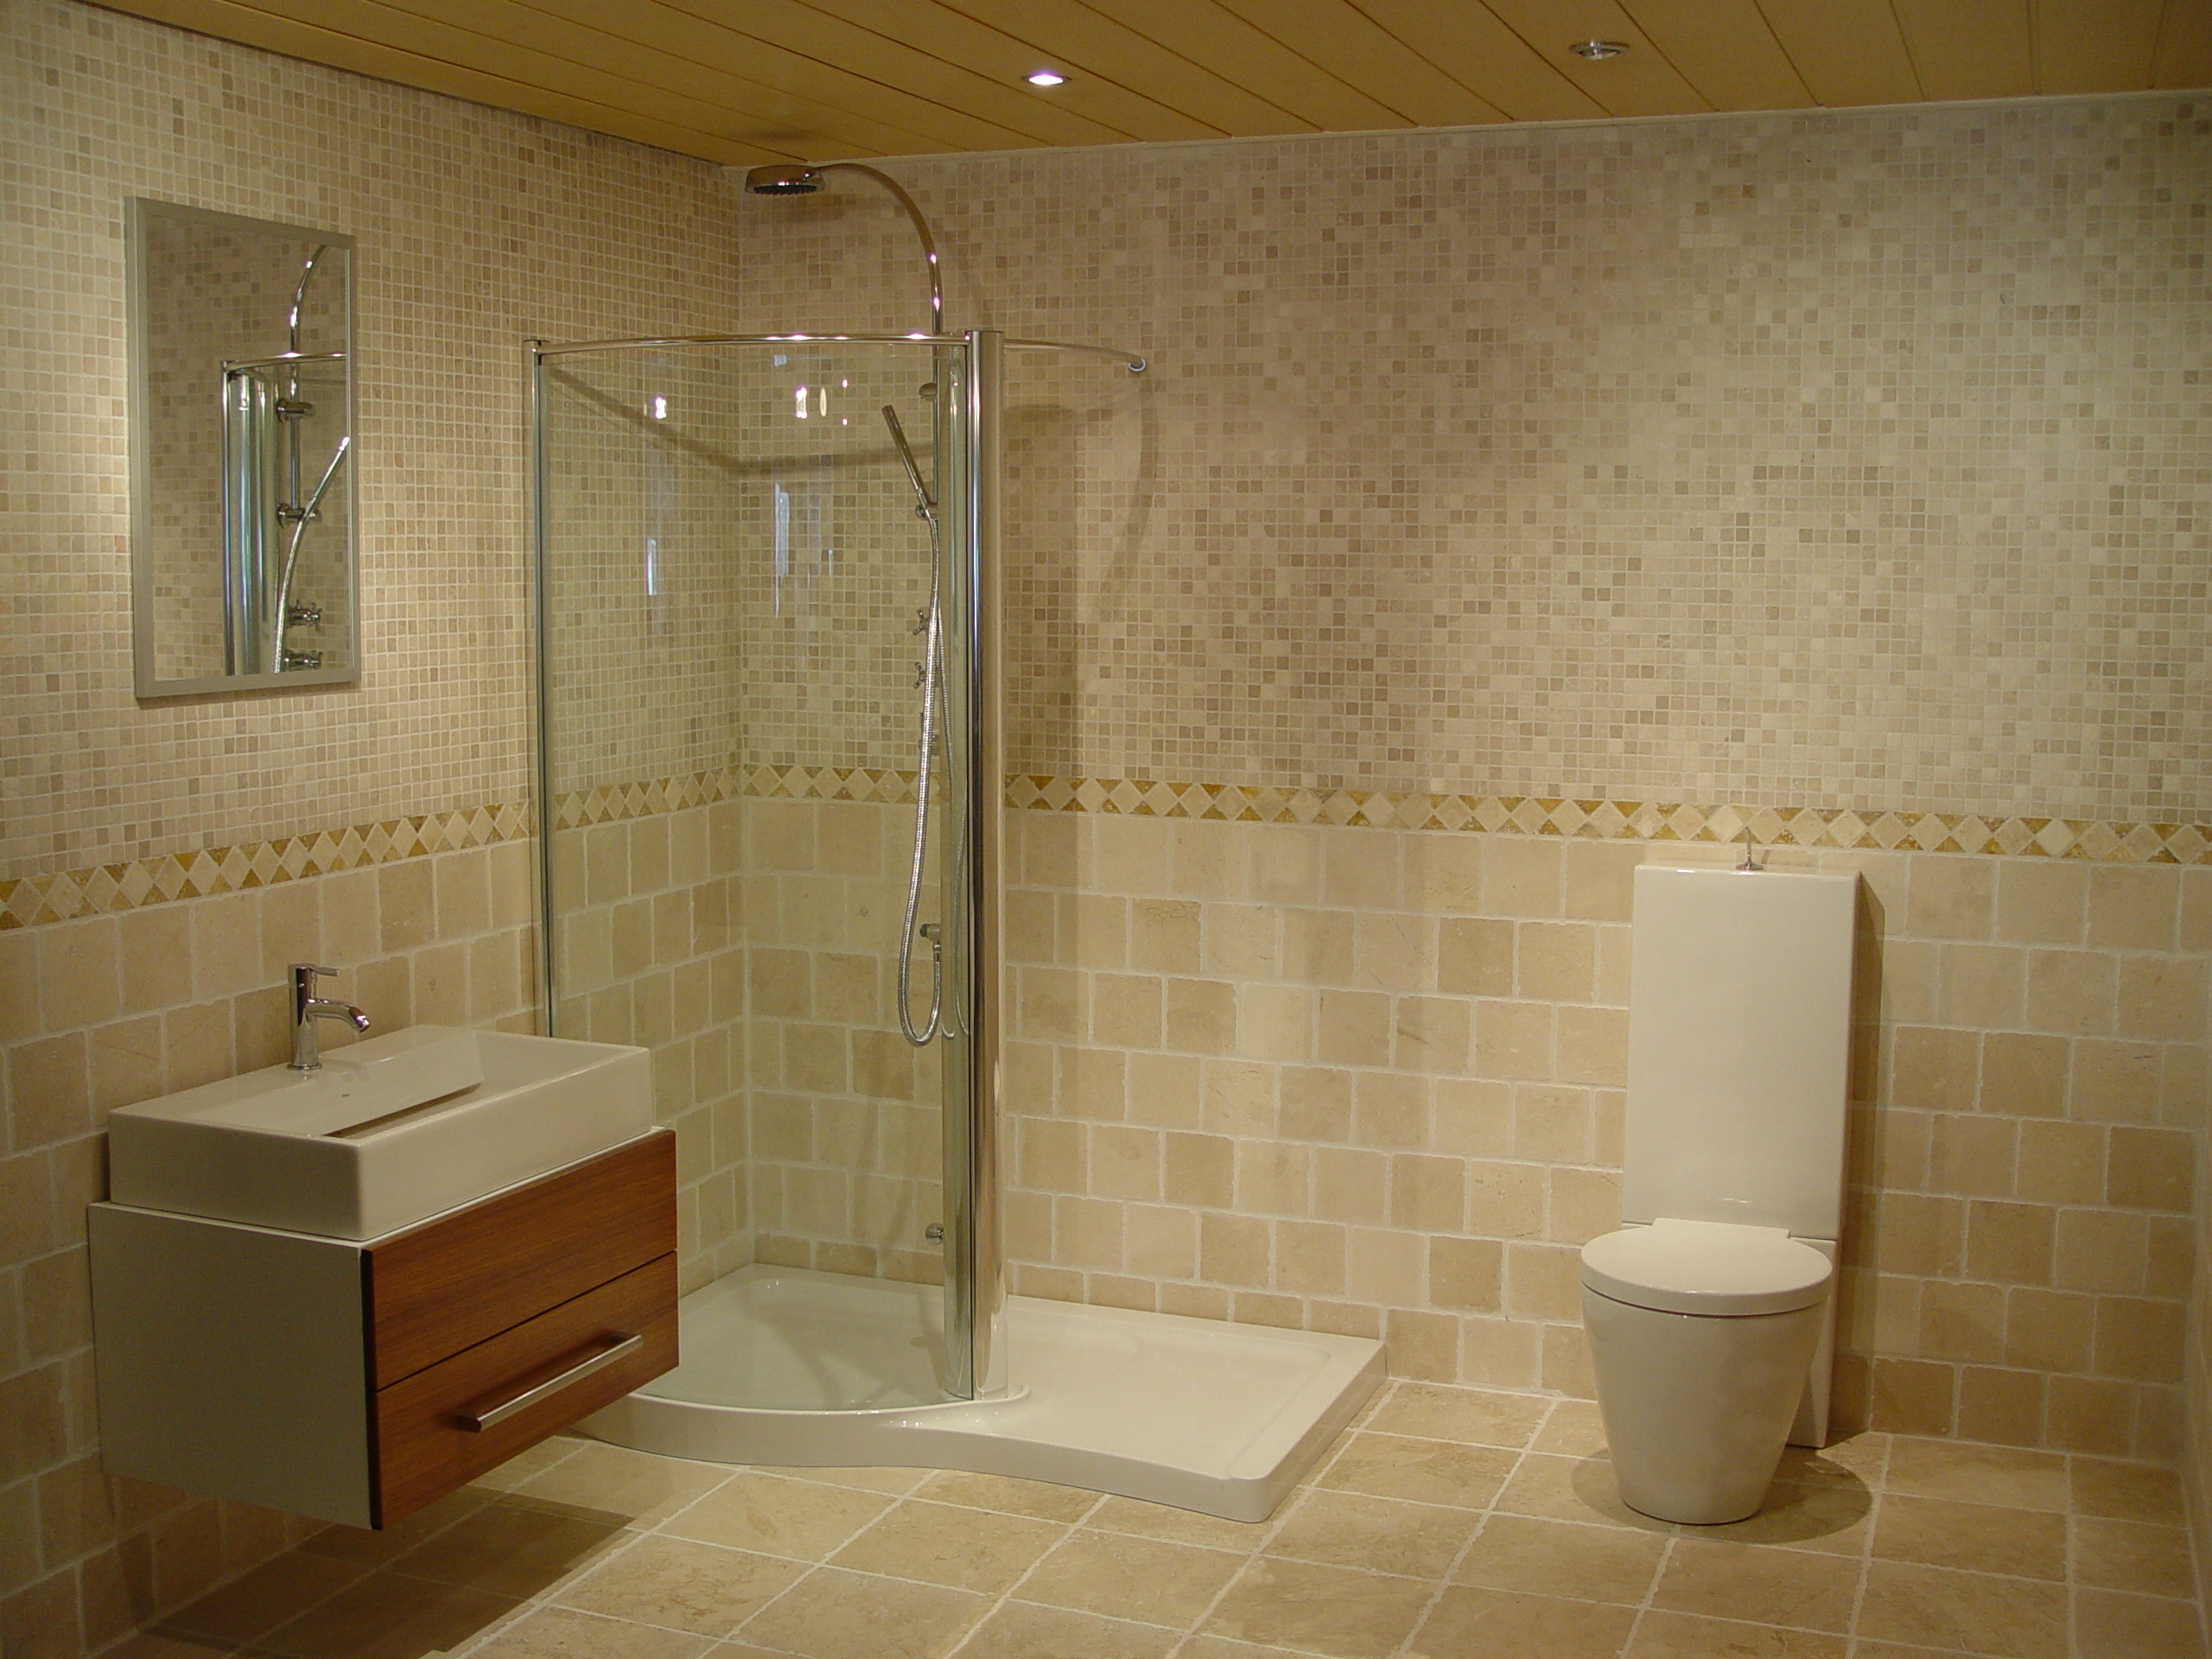 bathtub design ideas. simple bathroom design ideas uk on small, Bathroom decor